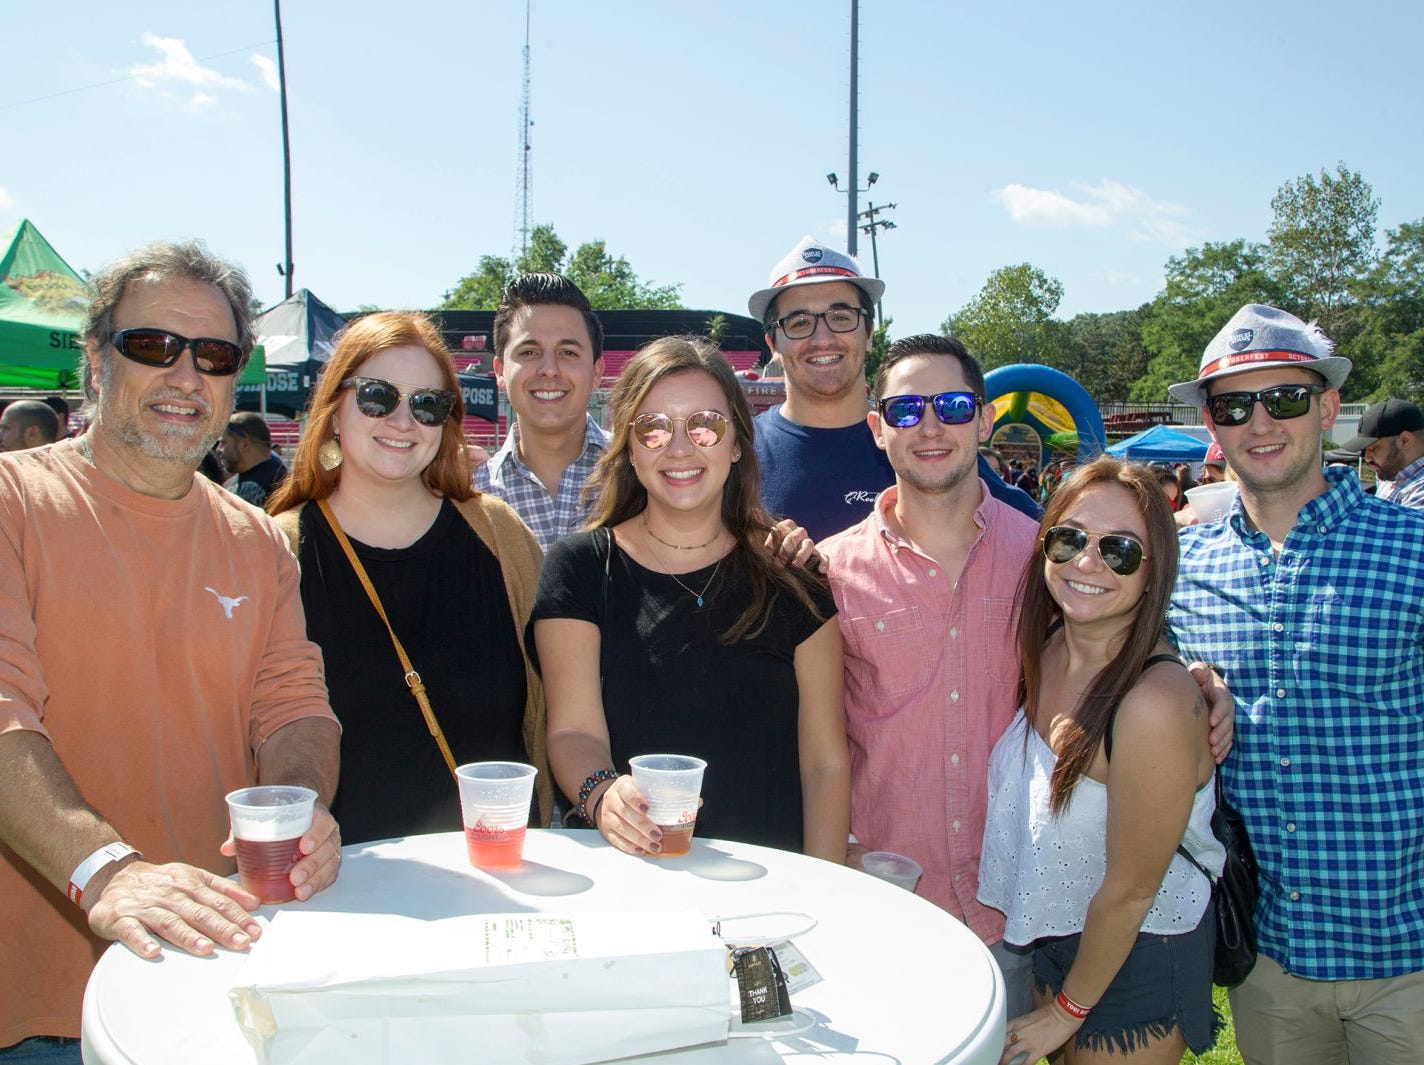 Rick, Nicole, Tyler, Emily, Mike, Dylan, Sam. The second annual Food Truck & Craft Beer Festival at Yogi Berra Stadium in Little Falls. 09/29/2018